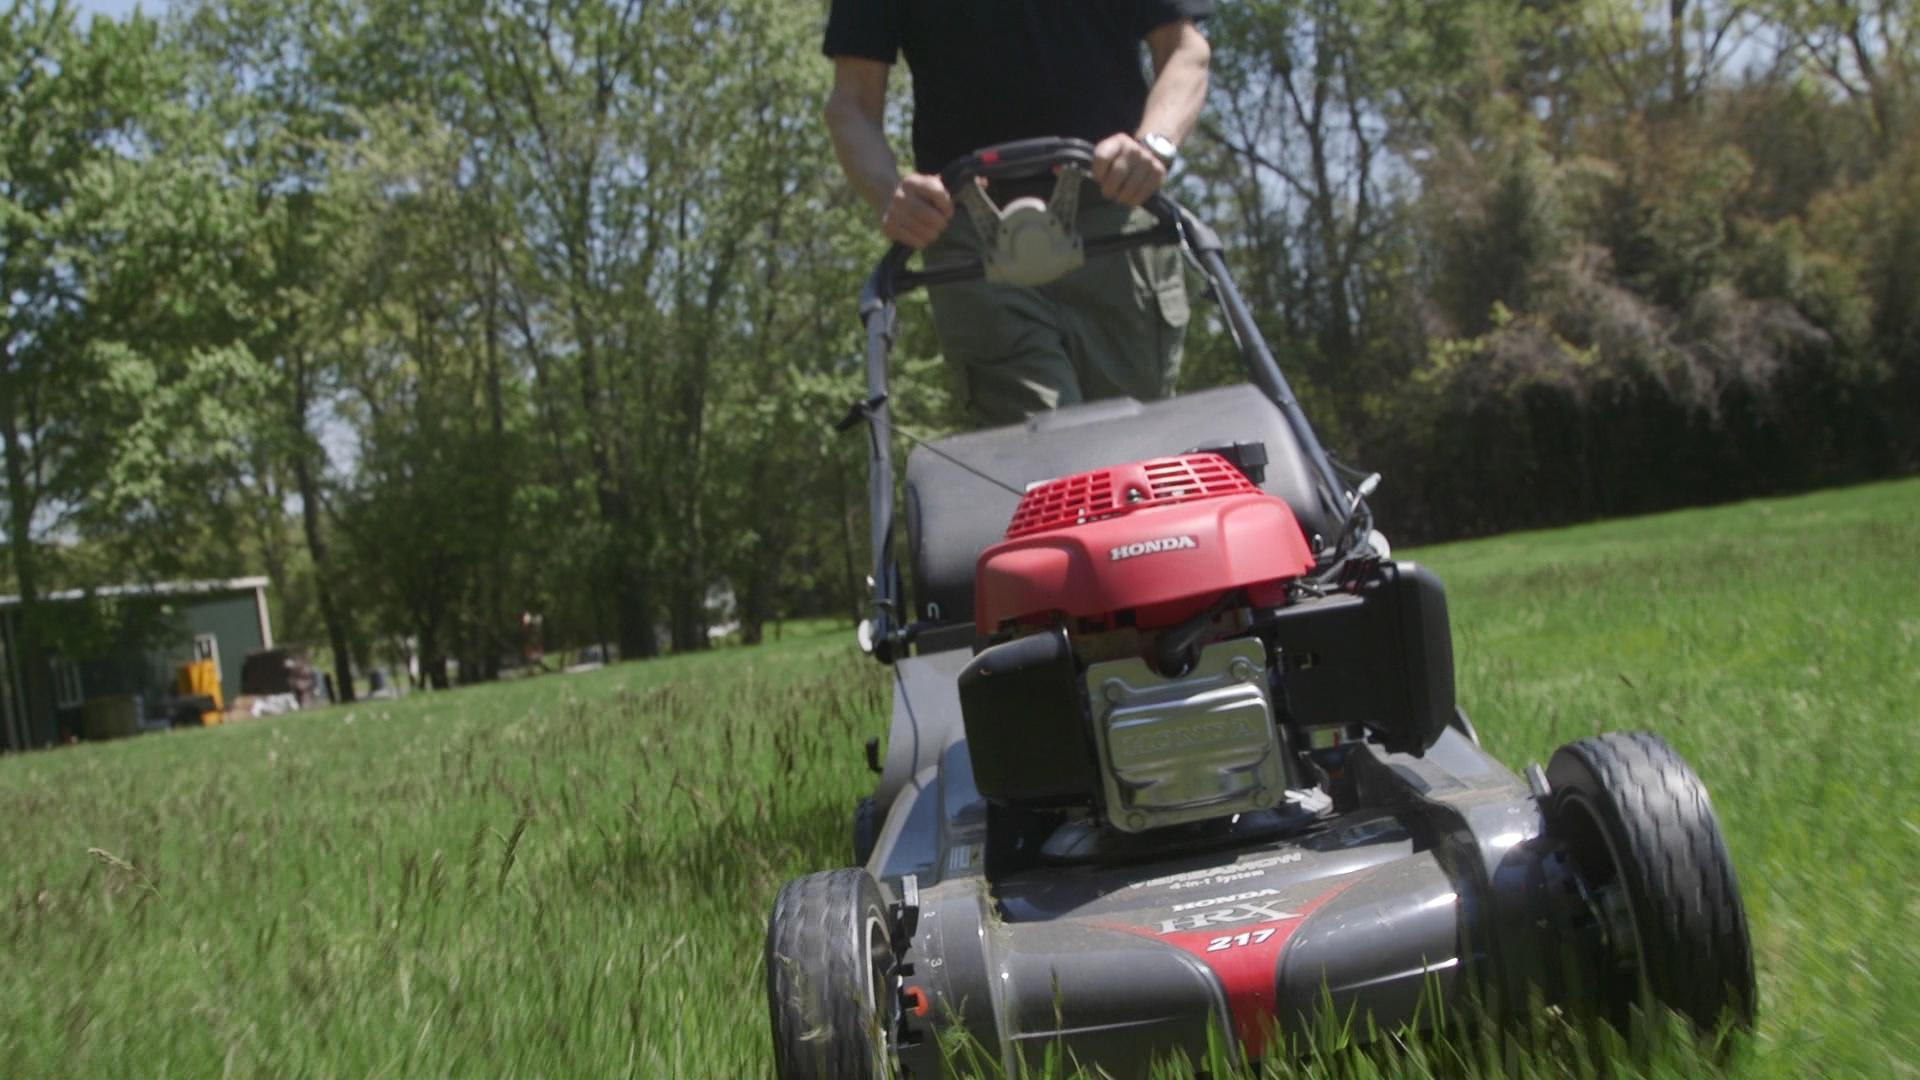 How to winterize your lawn mower consumer reports for Best motor oil for lawn mowers